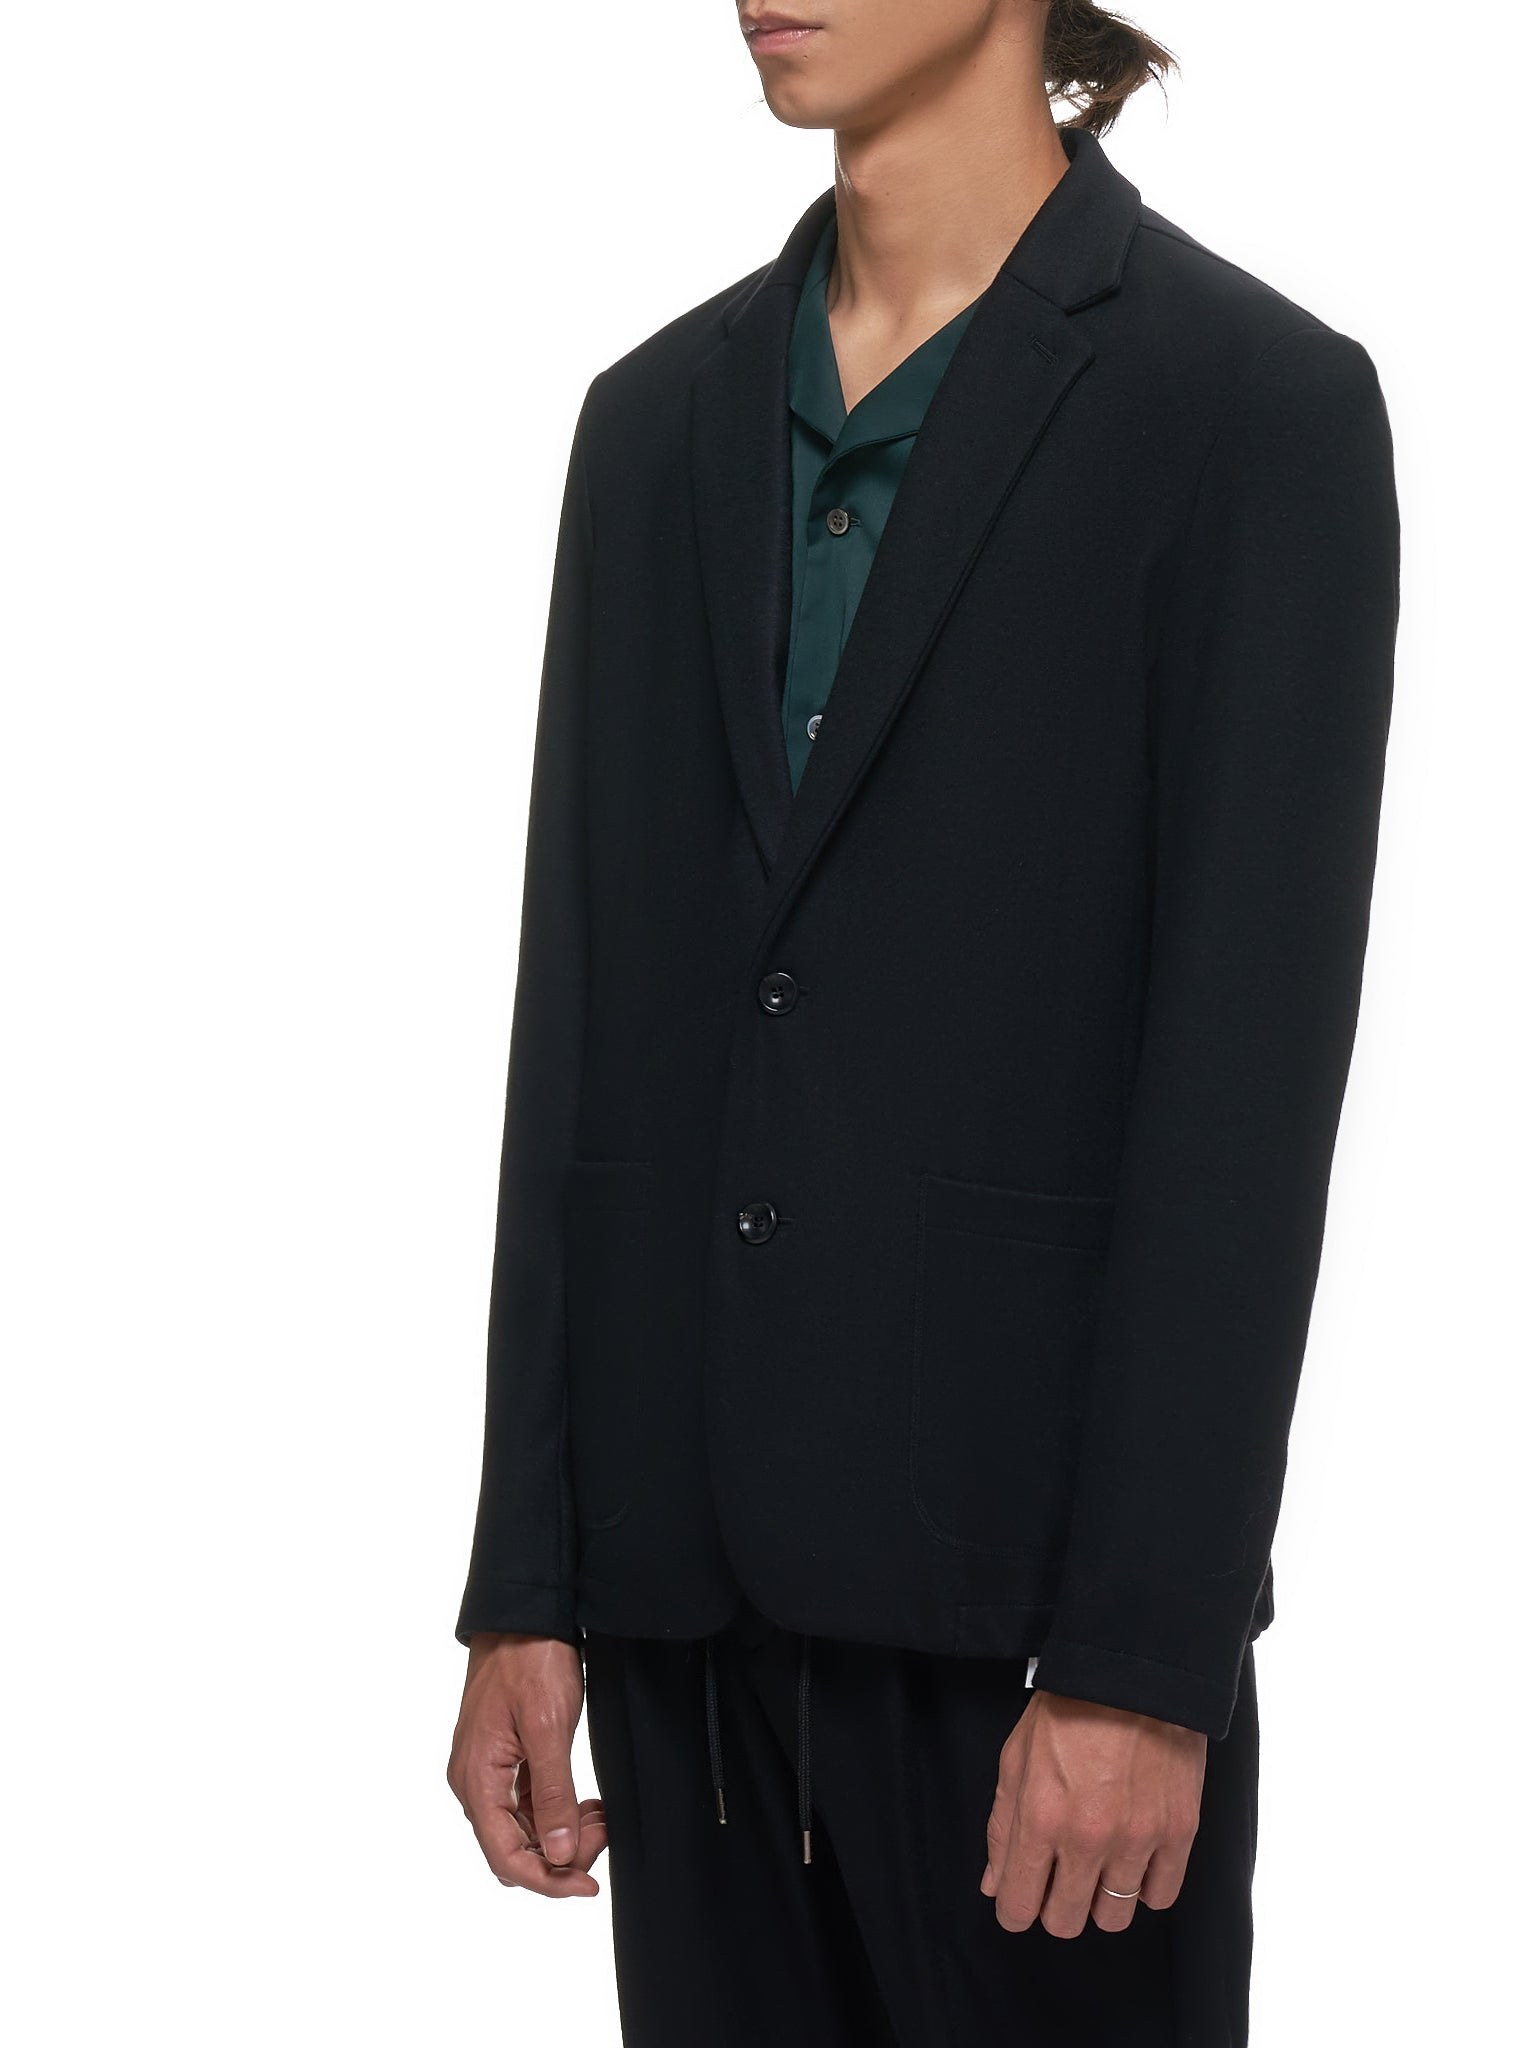 Attachment Kazuyuki Kumagai Blazer - Hlorenzo Side